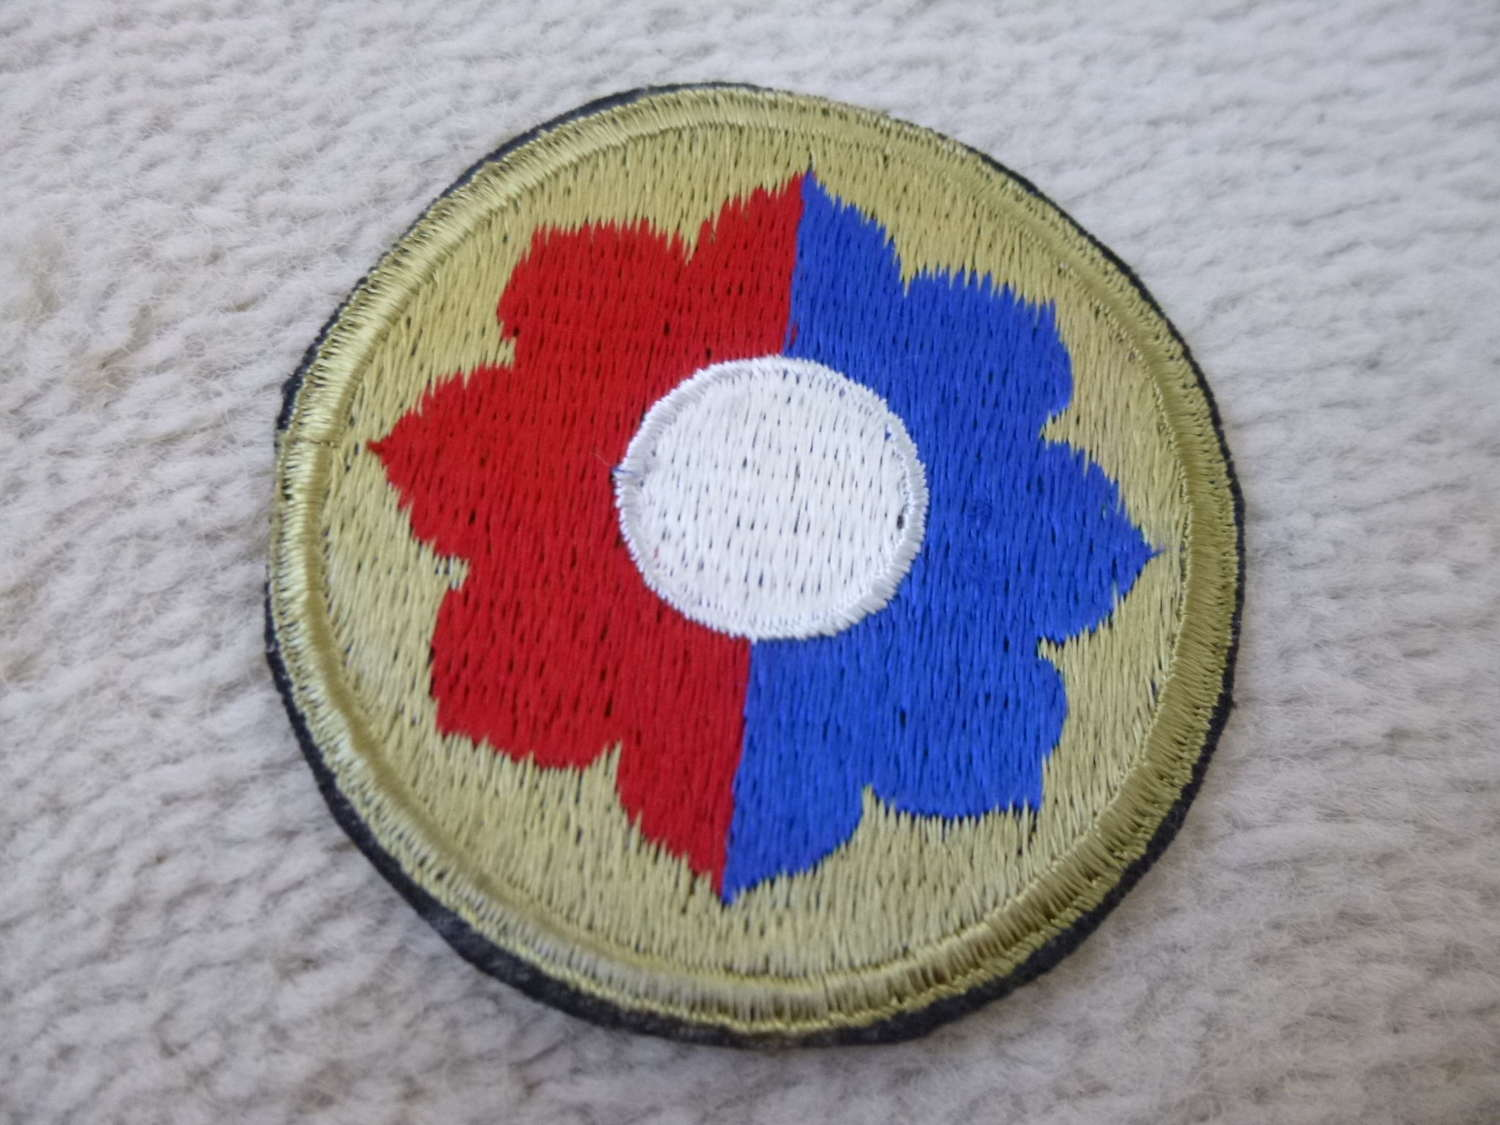 US army 9th infantry division patch